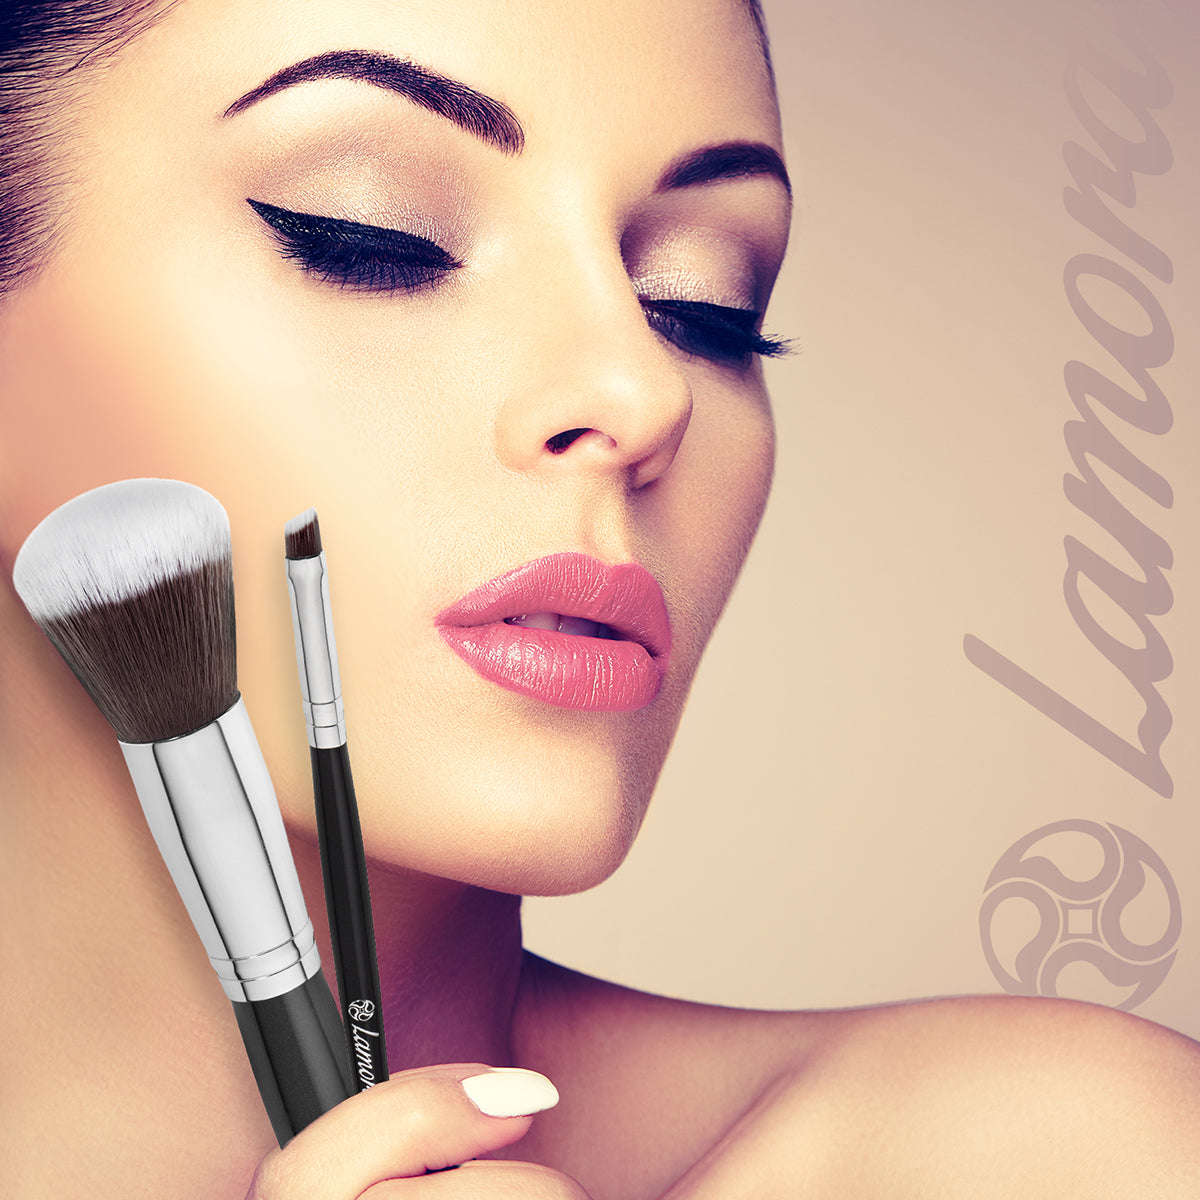 Beautiful woman holding a blush brush and tapered precision brush